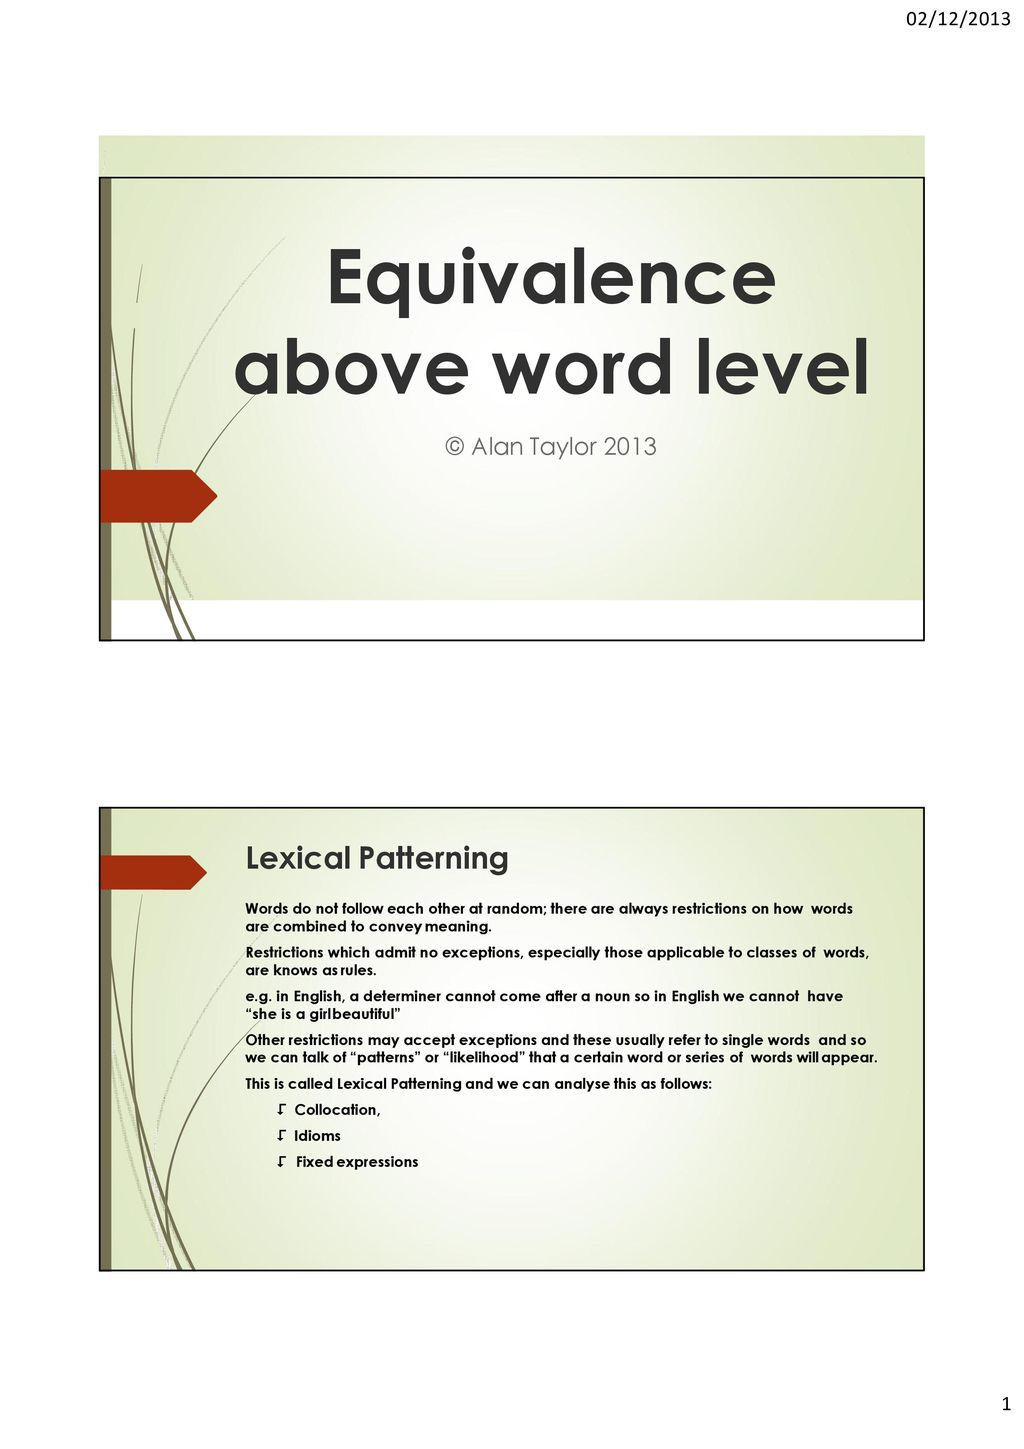 Lexical compatibility of words